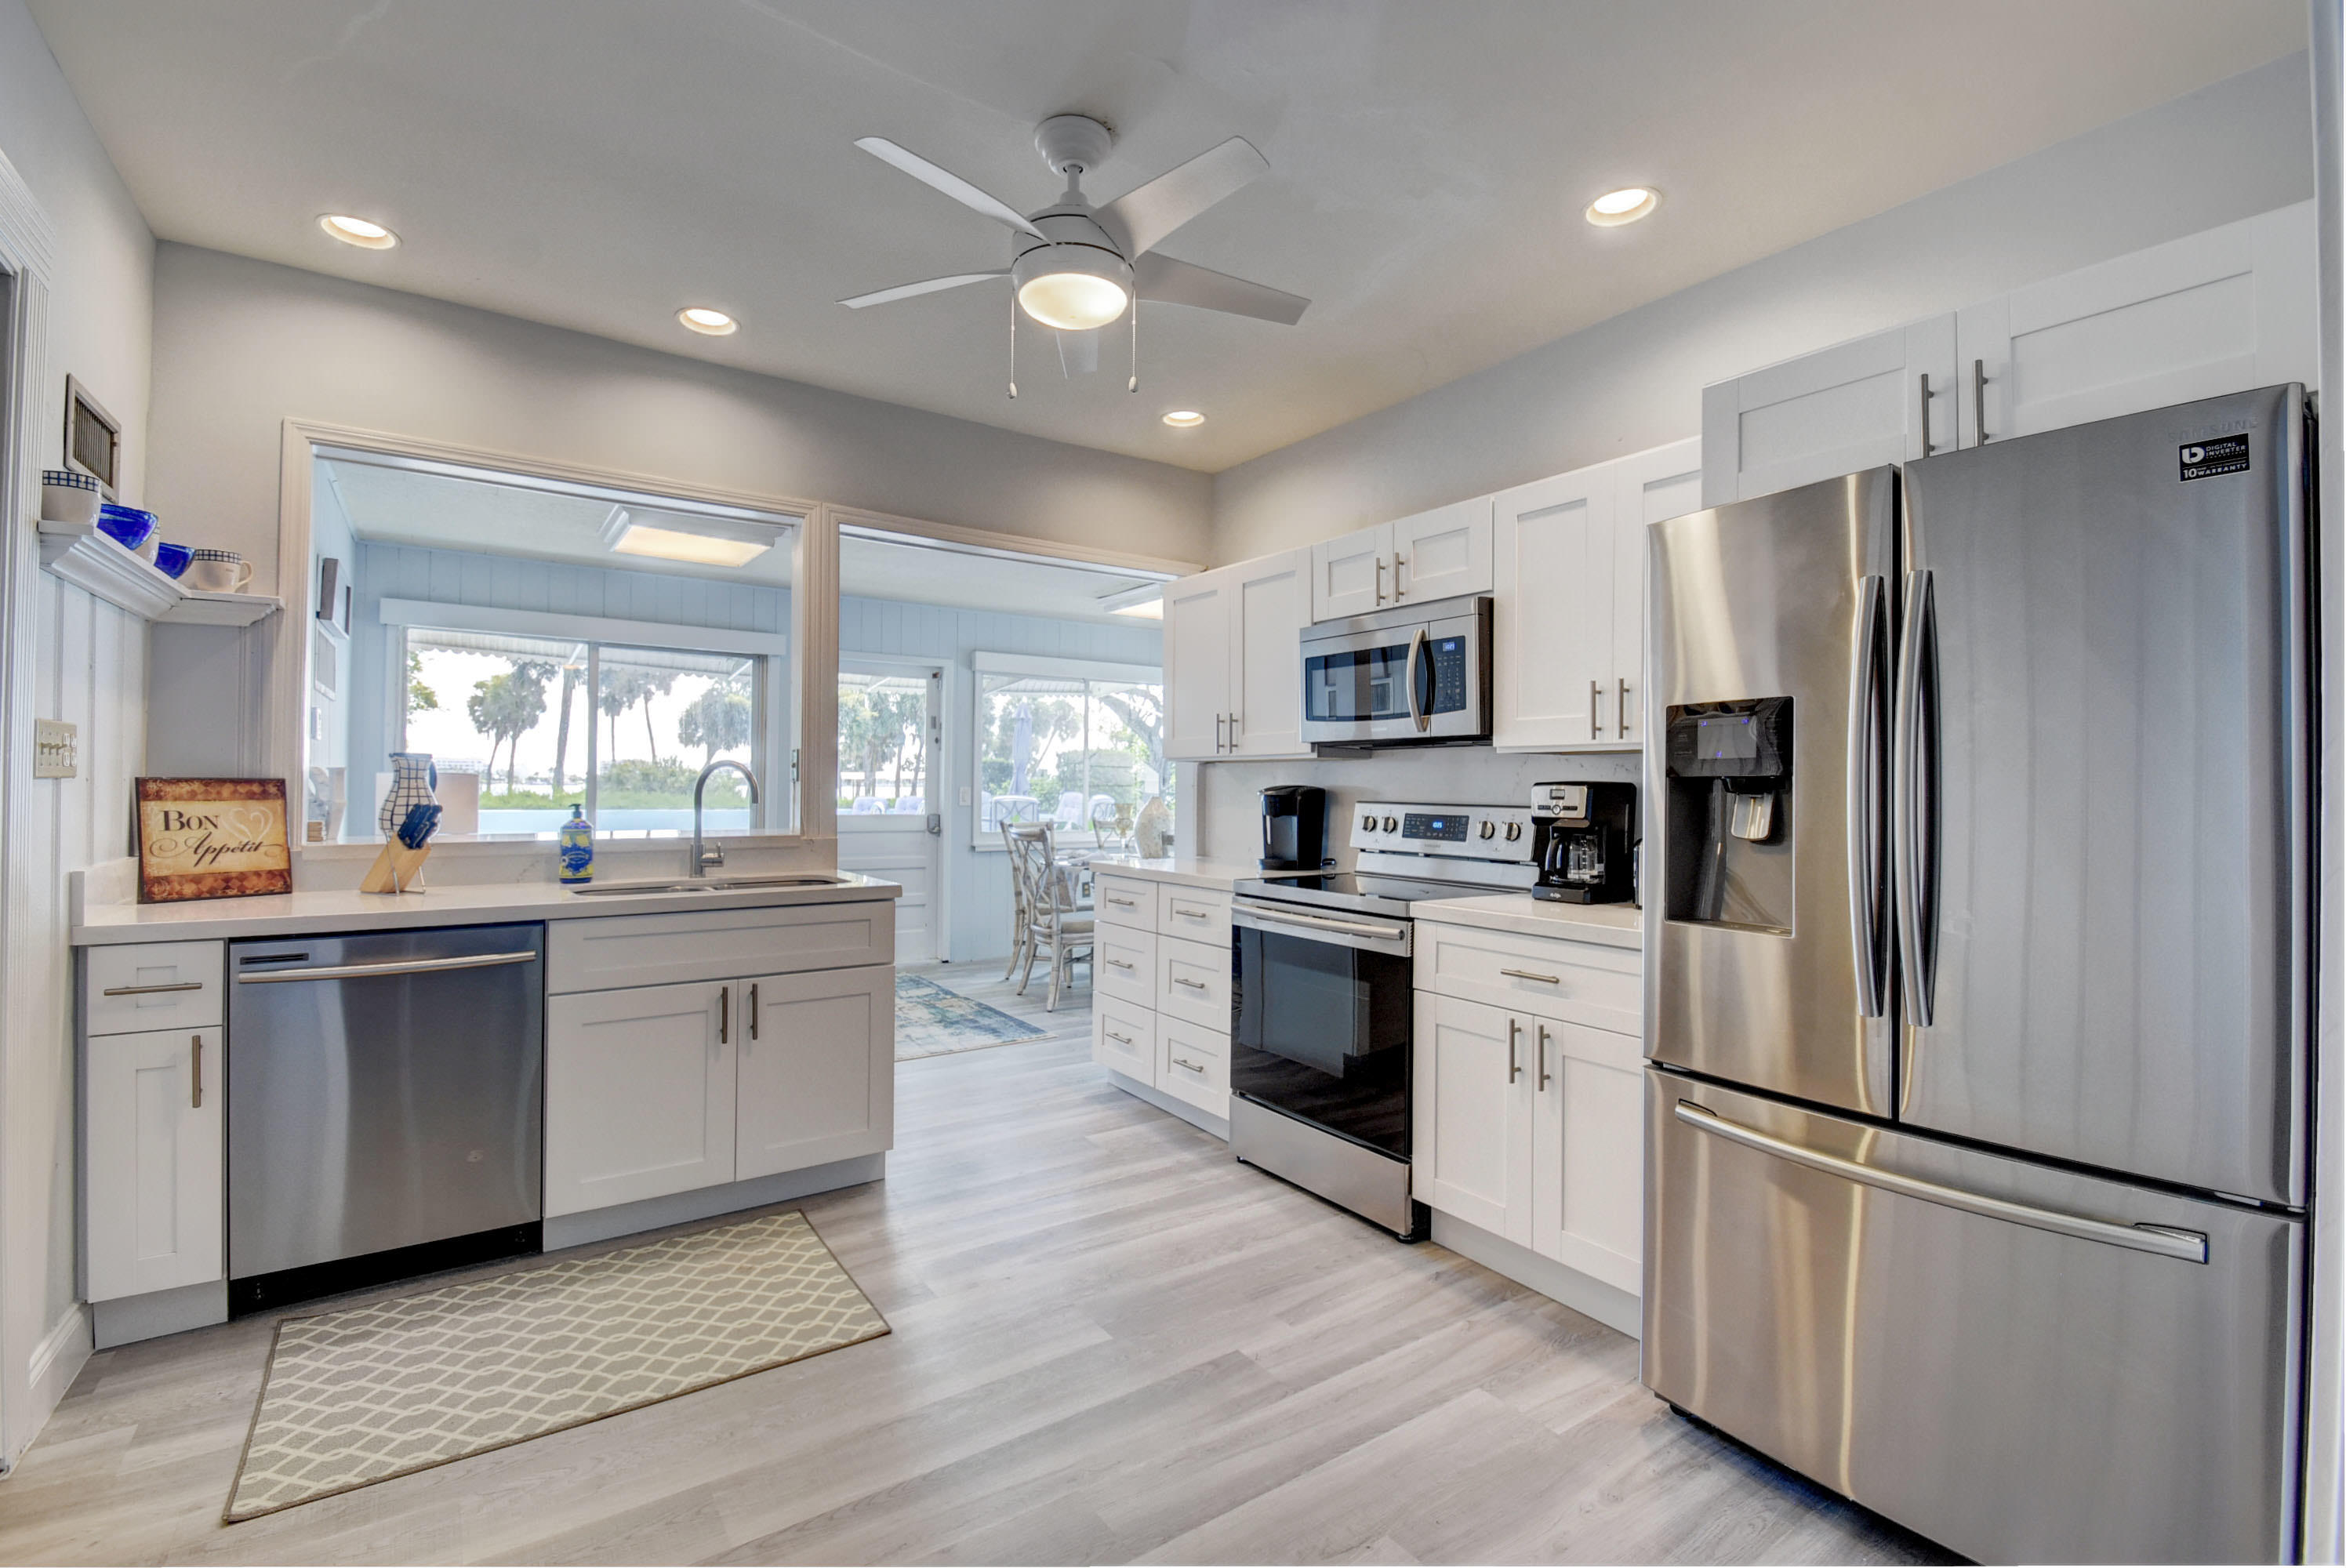 312 Lakeside Drive, Lake Worth Beach, Florida 33460, 6 Bedrooms Bedrooms, ,4 BathroomsBathrooms,Single Family,For Rent,Lakeside,1,RX-10651645